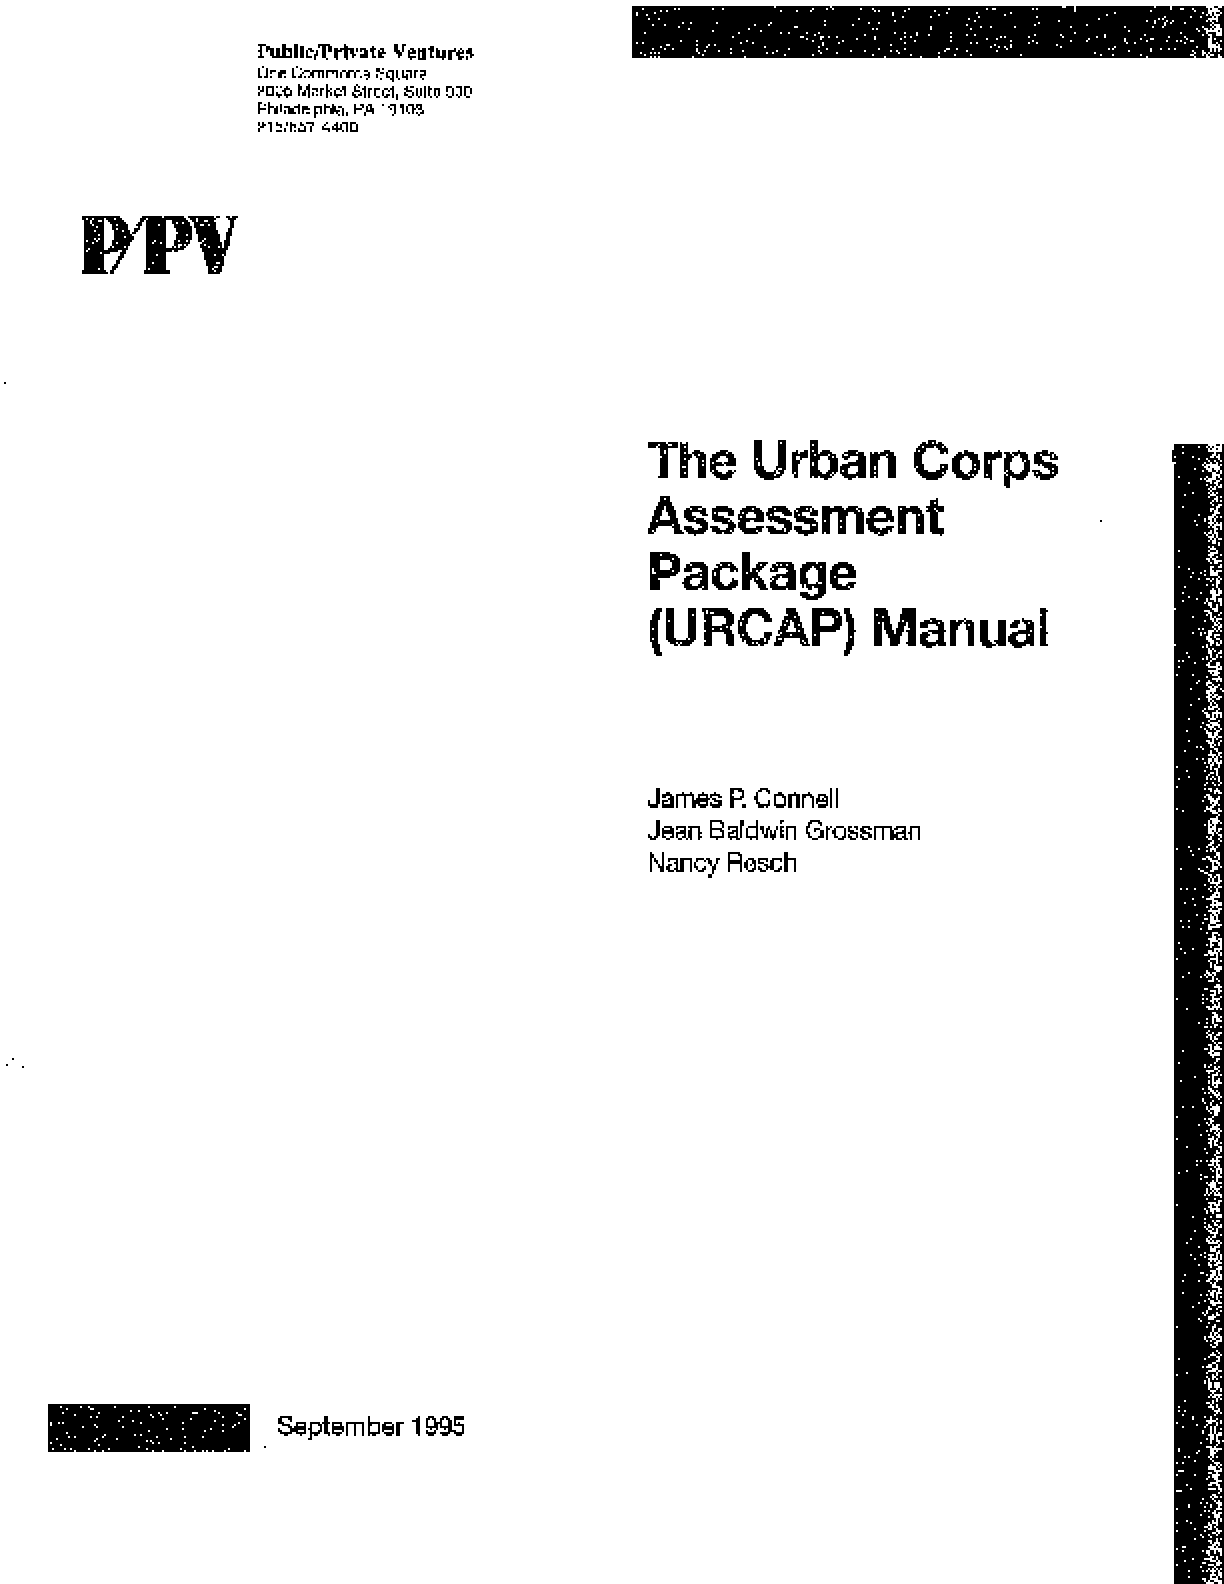 Urban Corps Assessment Package (URCAP) Manual